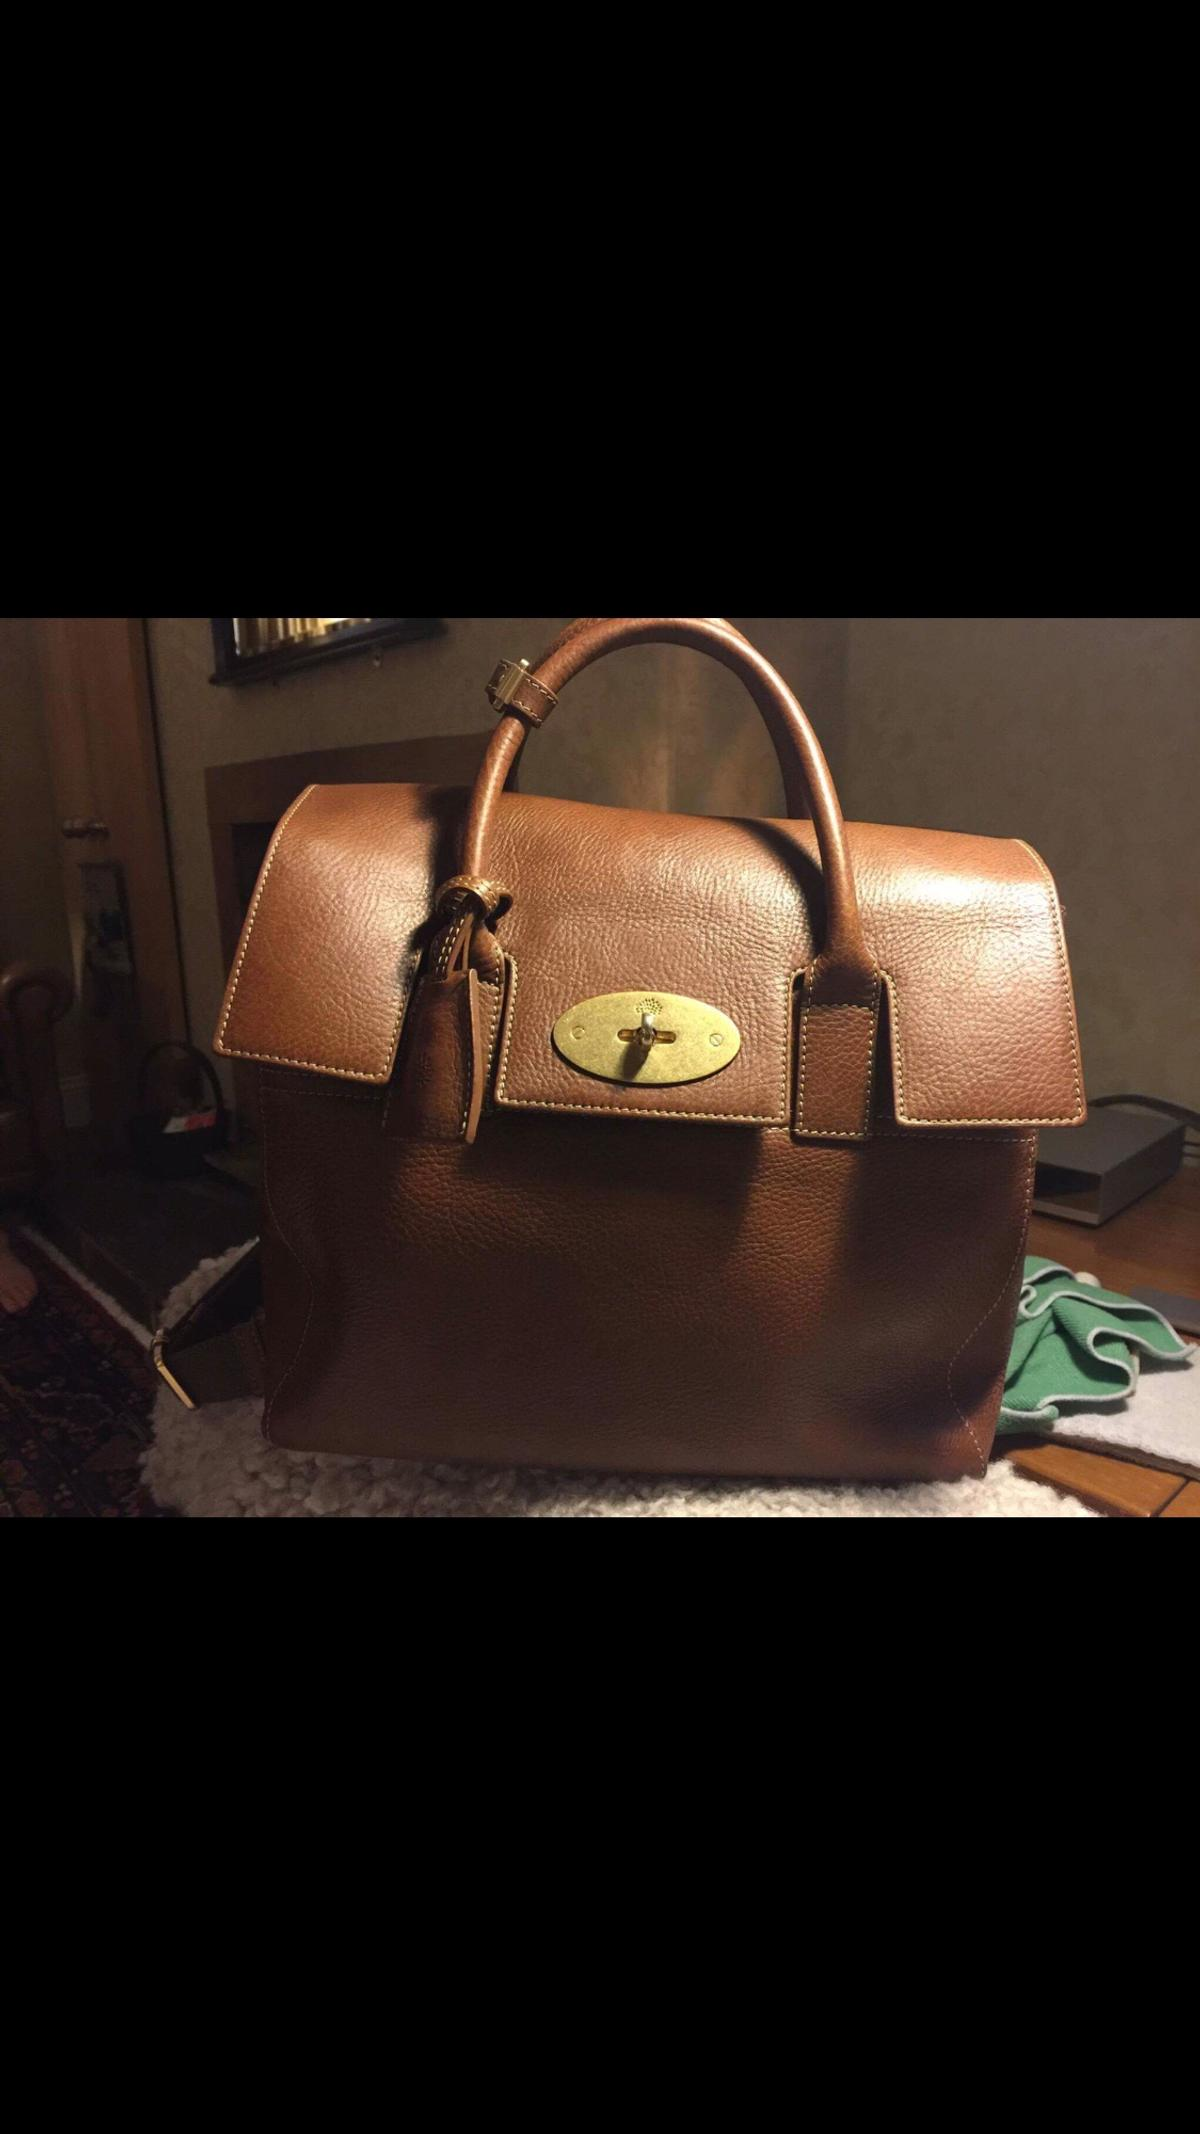 1a3edb5e2a0 Description. Immaculate condition. Hardly used. In oak. Back pack or  handbag .